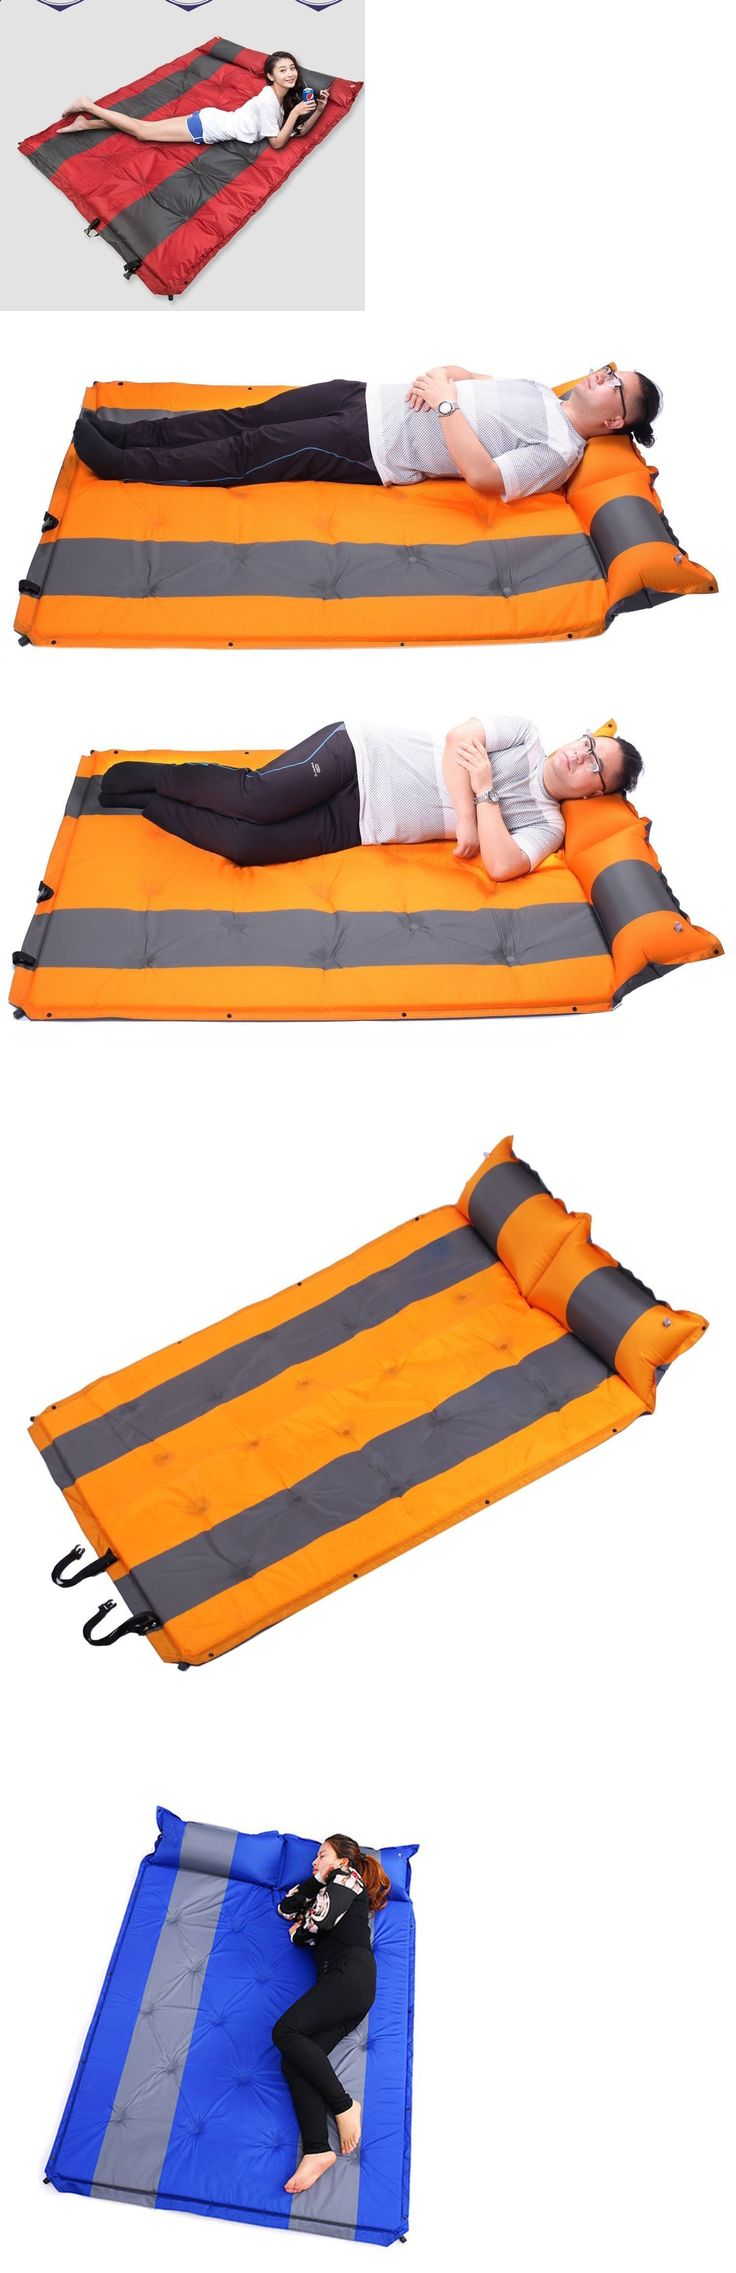 Camping Sleeping Pad - Mattresses and Pads 36114: Double Self Inflating Pad Sleeping Mattress Air Bed Camping Hiking Mat Joinable -> BUY IT NOW ONLY: $45.99 on eBay!